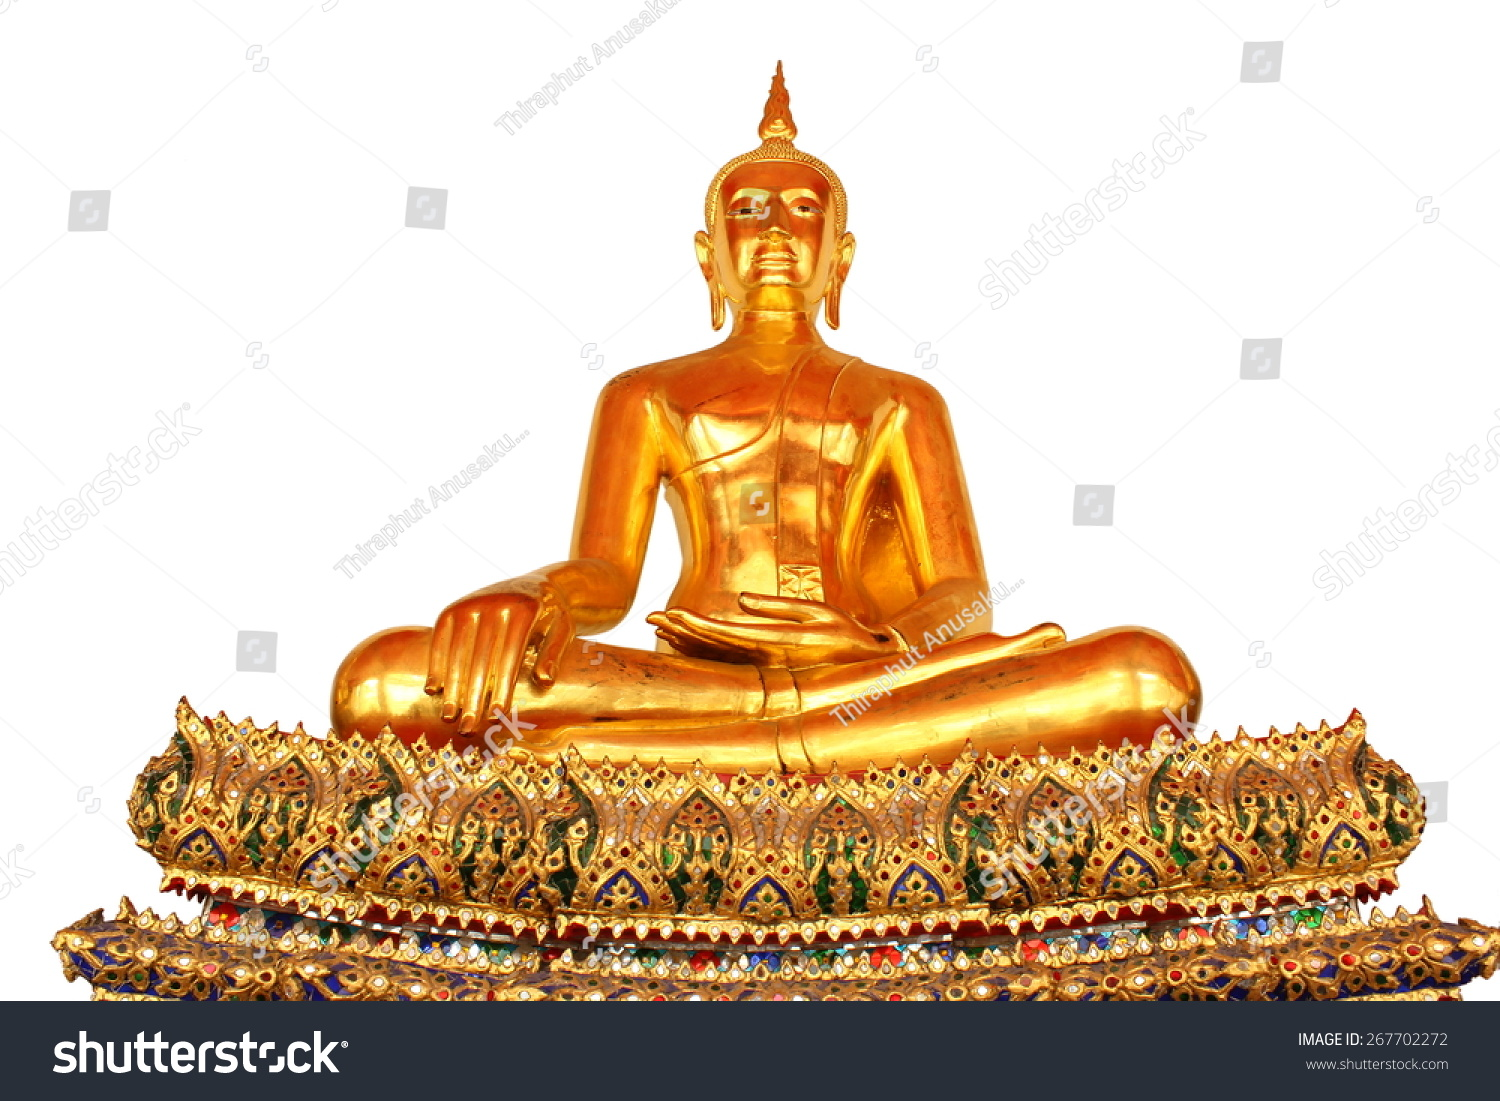 umbarger buddhist singles Buddhist dating site  buddhist singles from all over the world choose us not only because of big database, but also for the reason that we take care of our users .